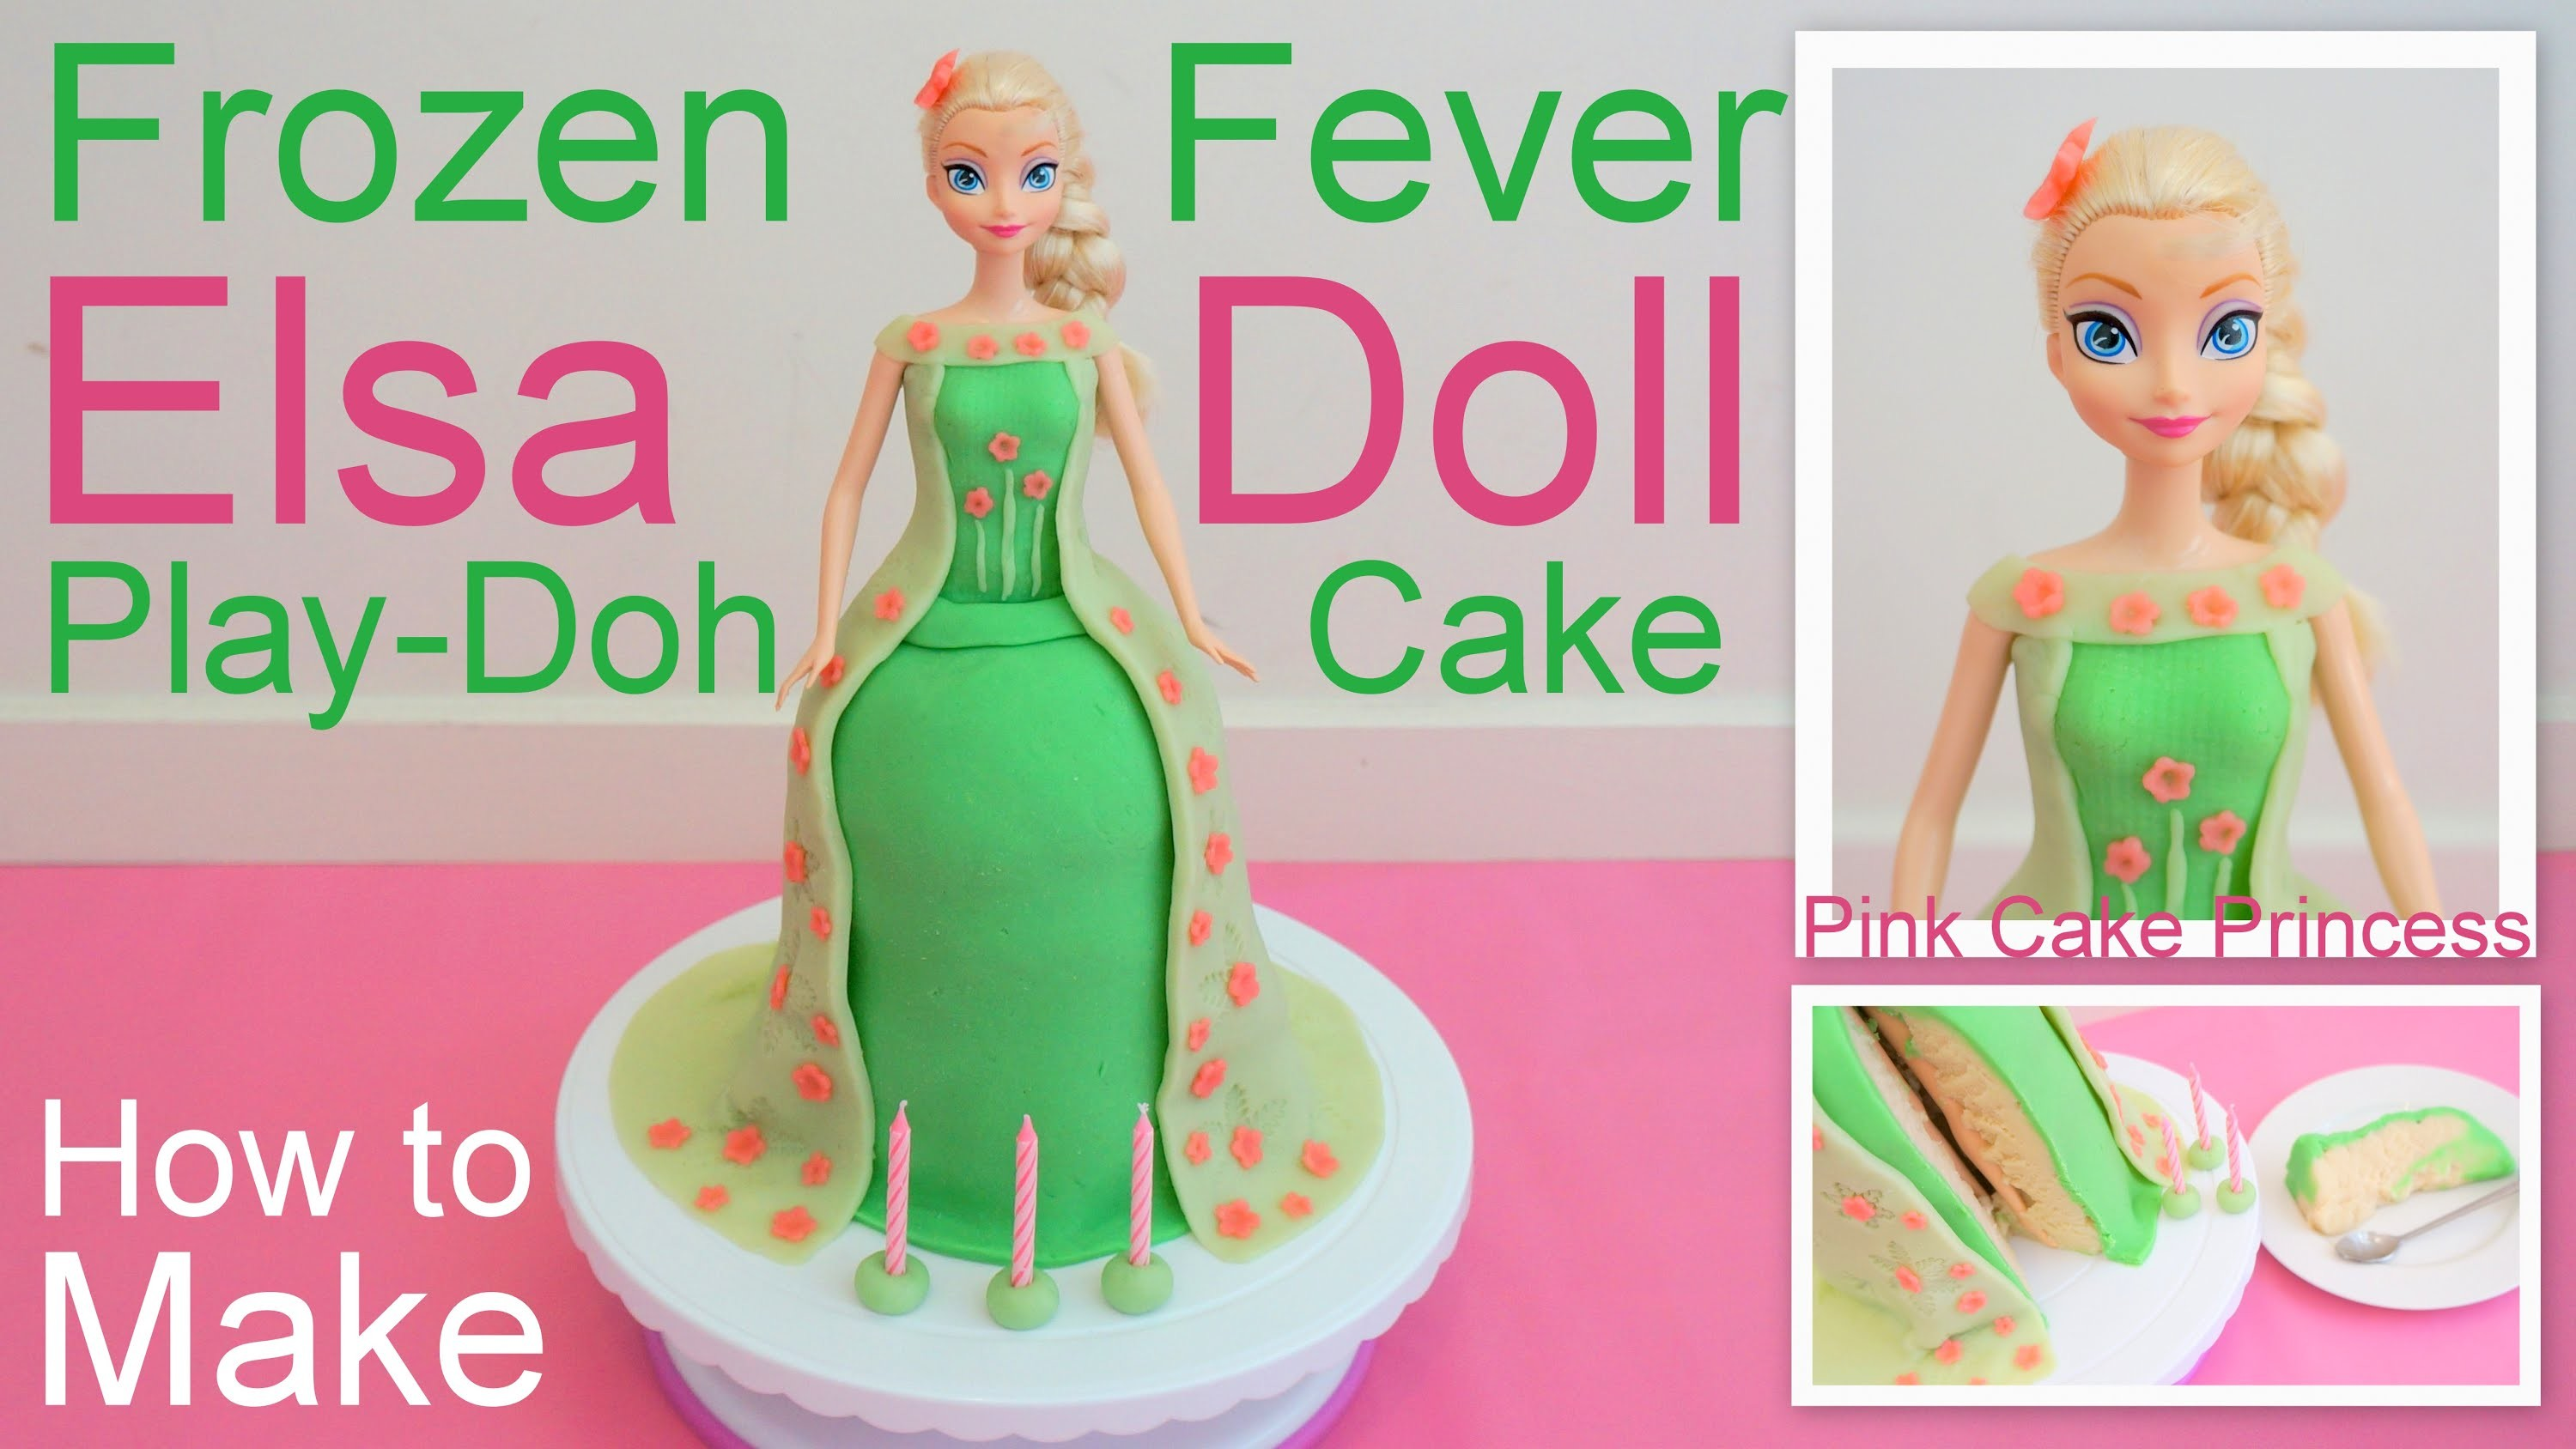 Frozen Fever Elsa Doll Play-Doh Cake how to by Pink Cake Princess - April Fools Day Trick Cake